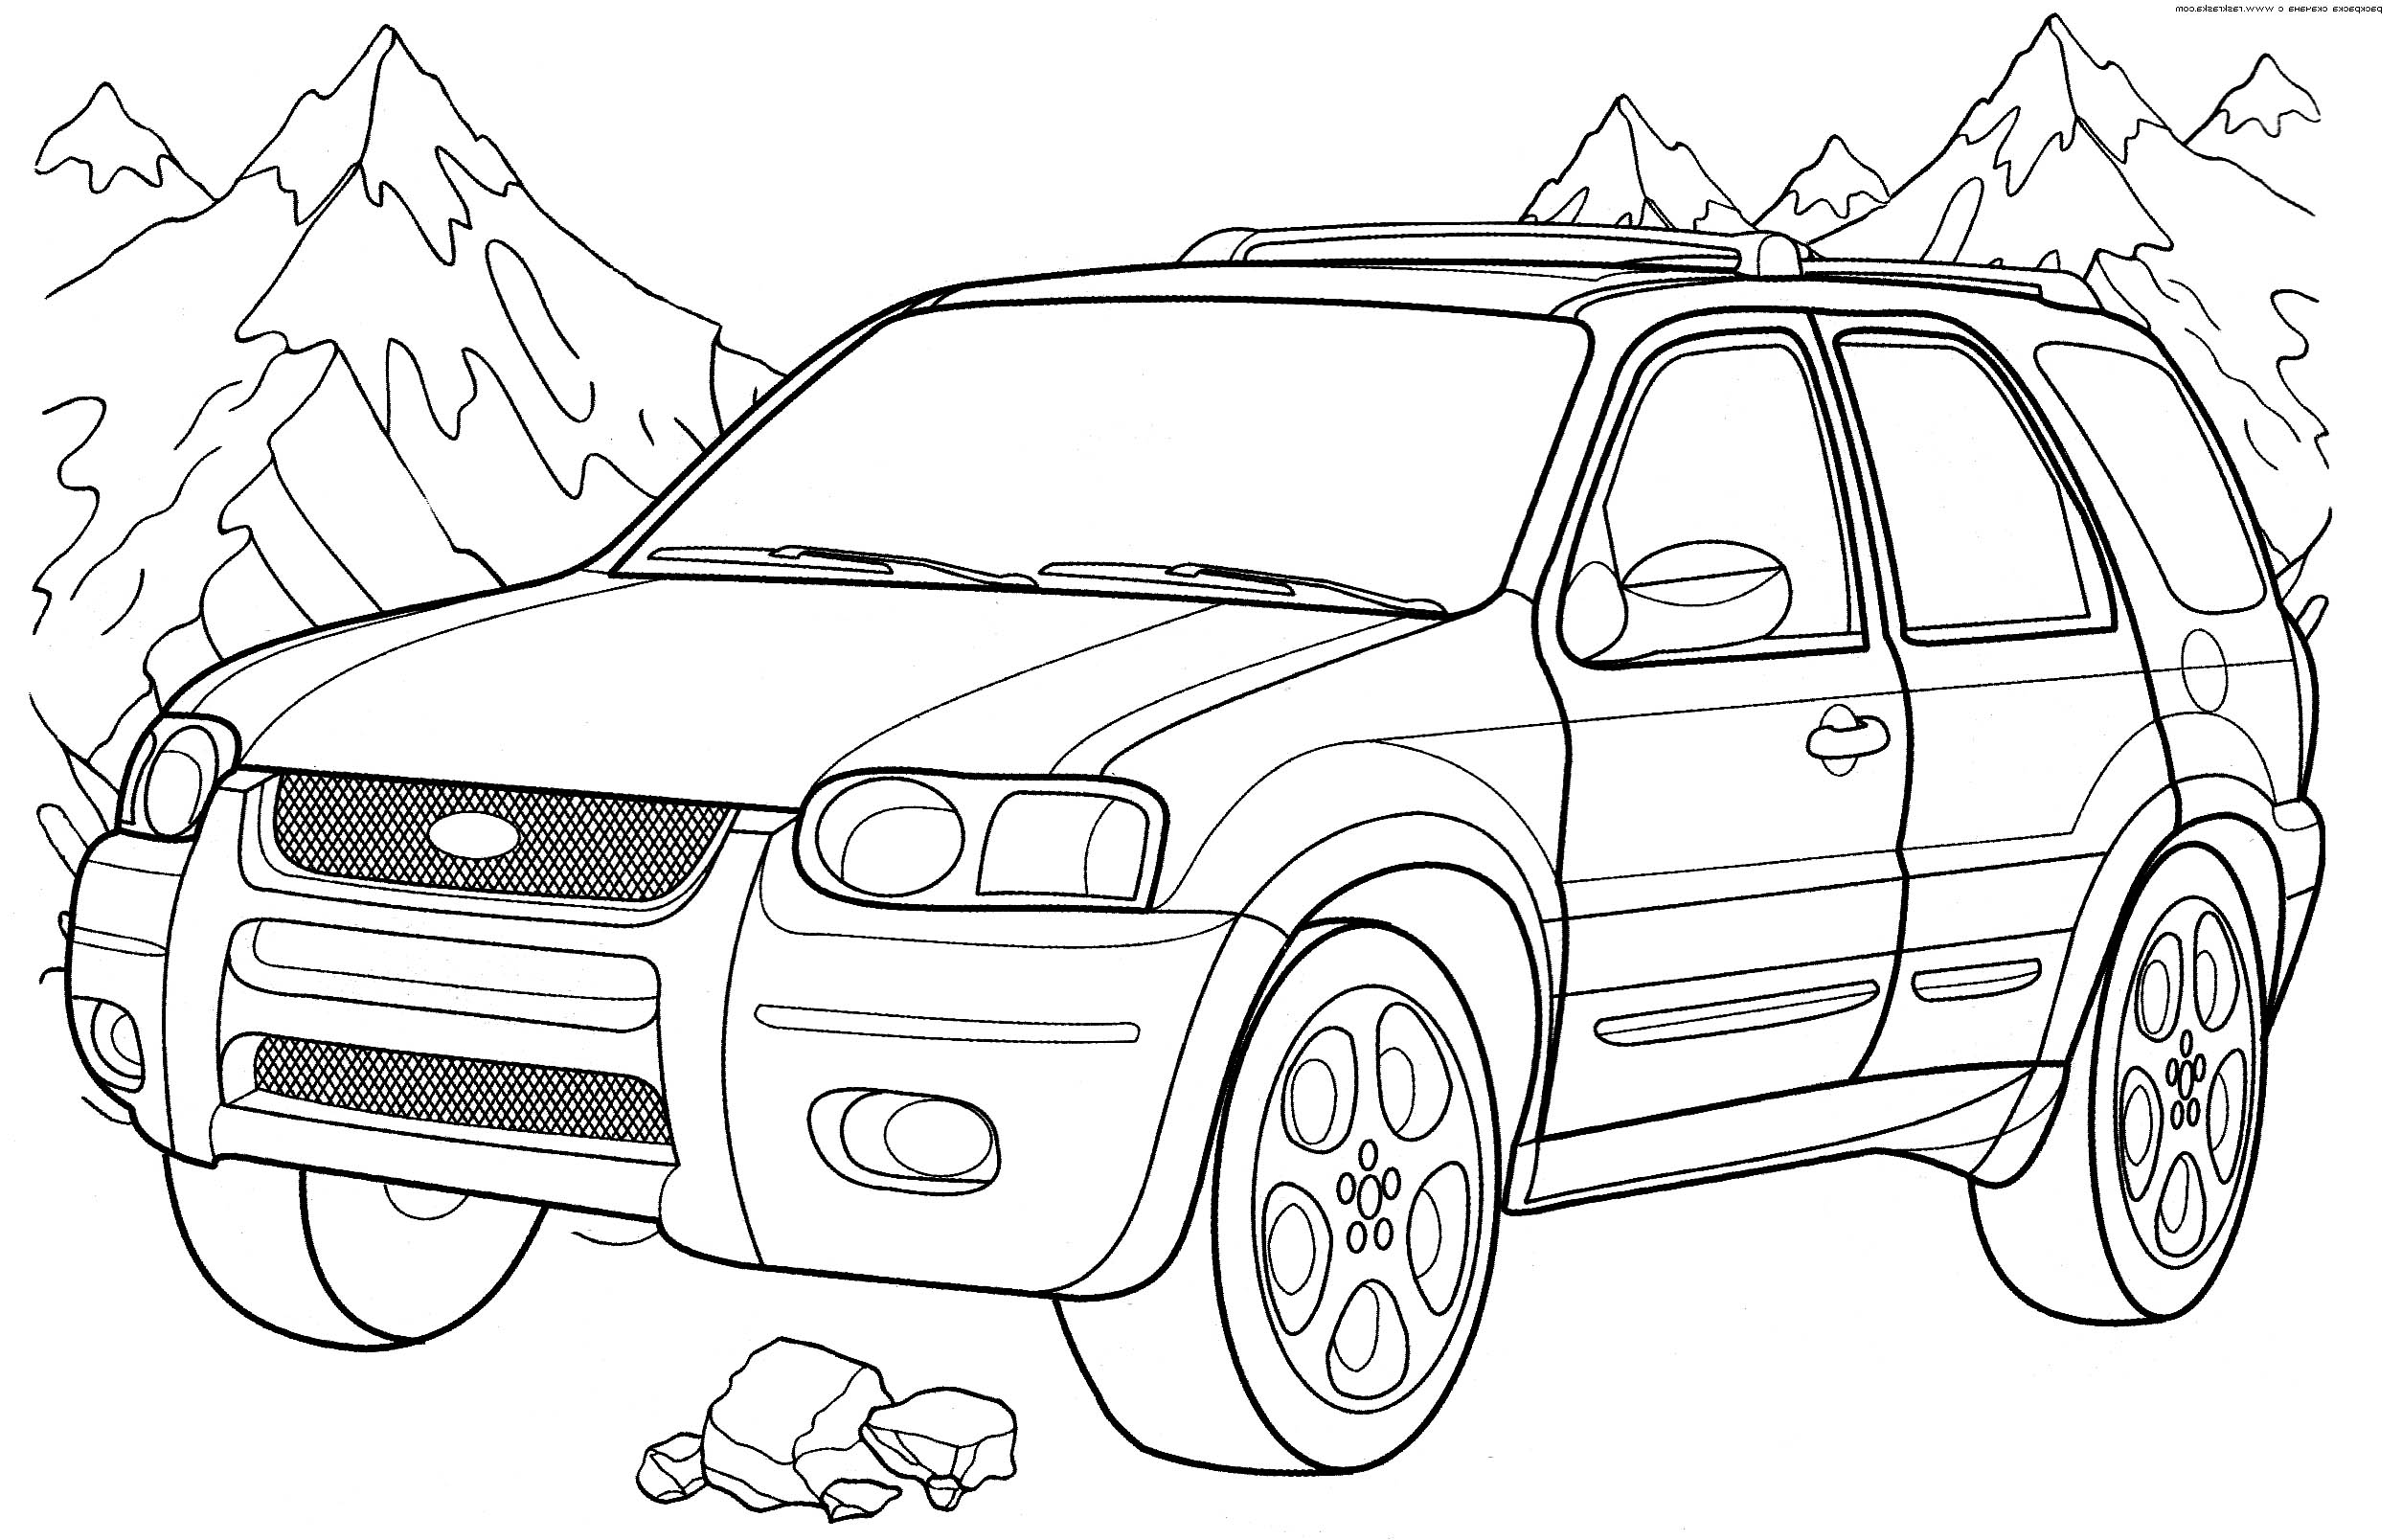 coloring pages to print cars ford coloring pages to download and print for free print cars pages coloring to